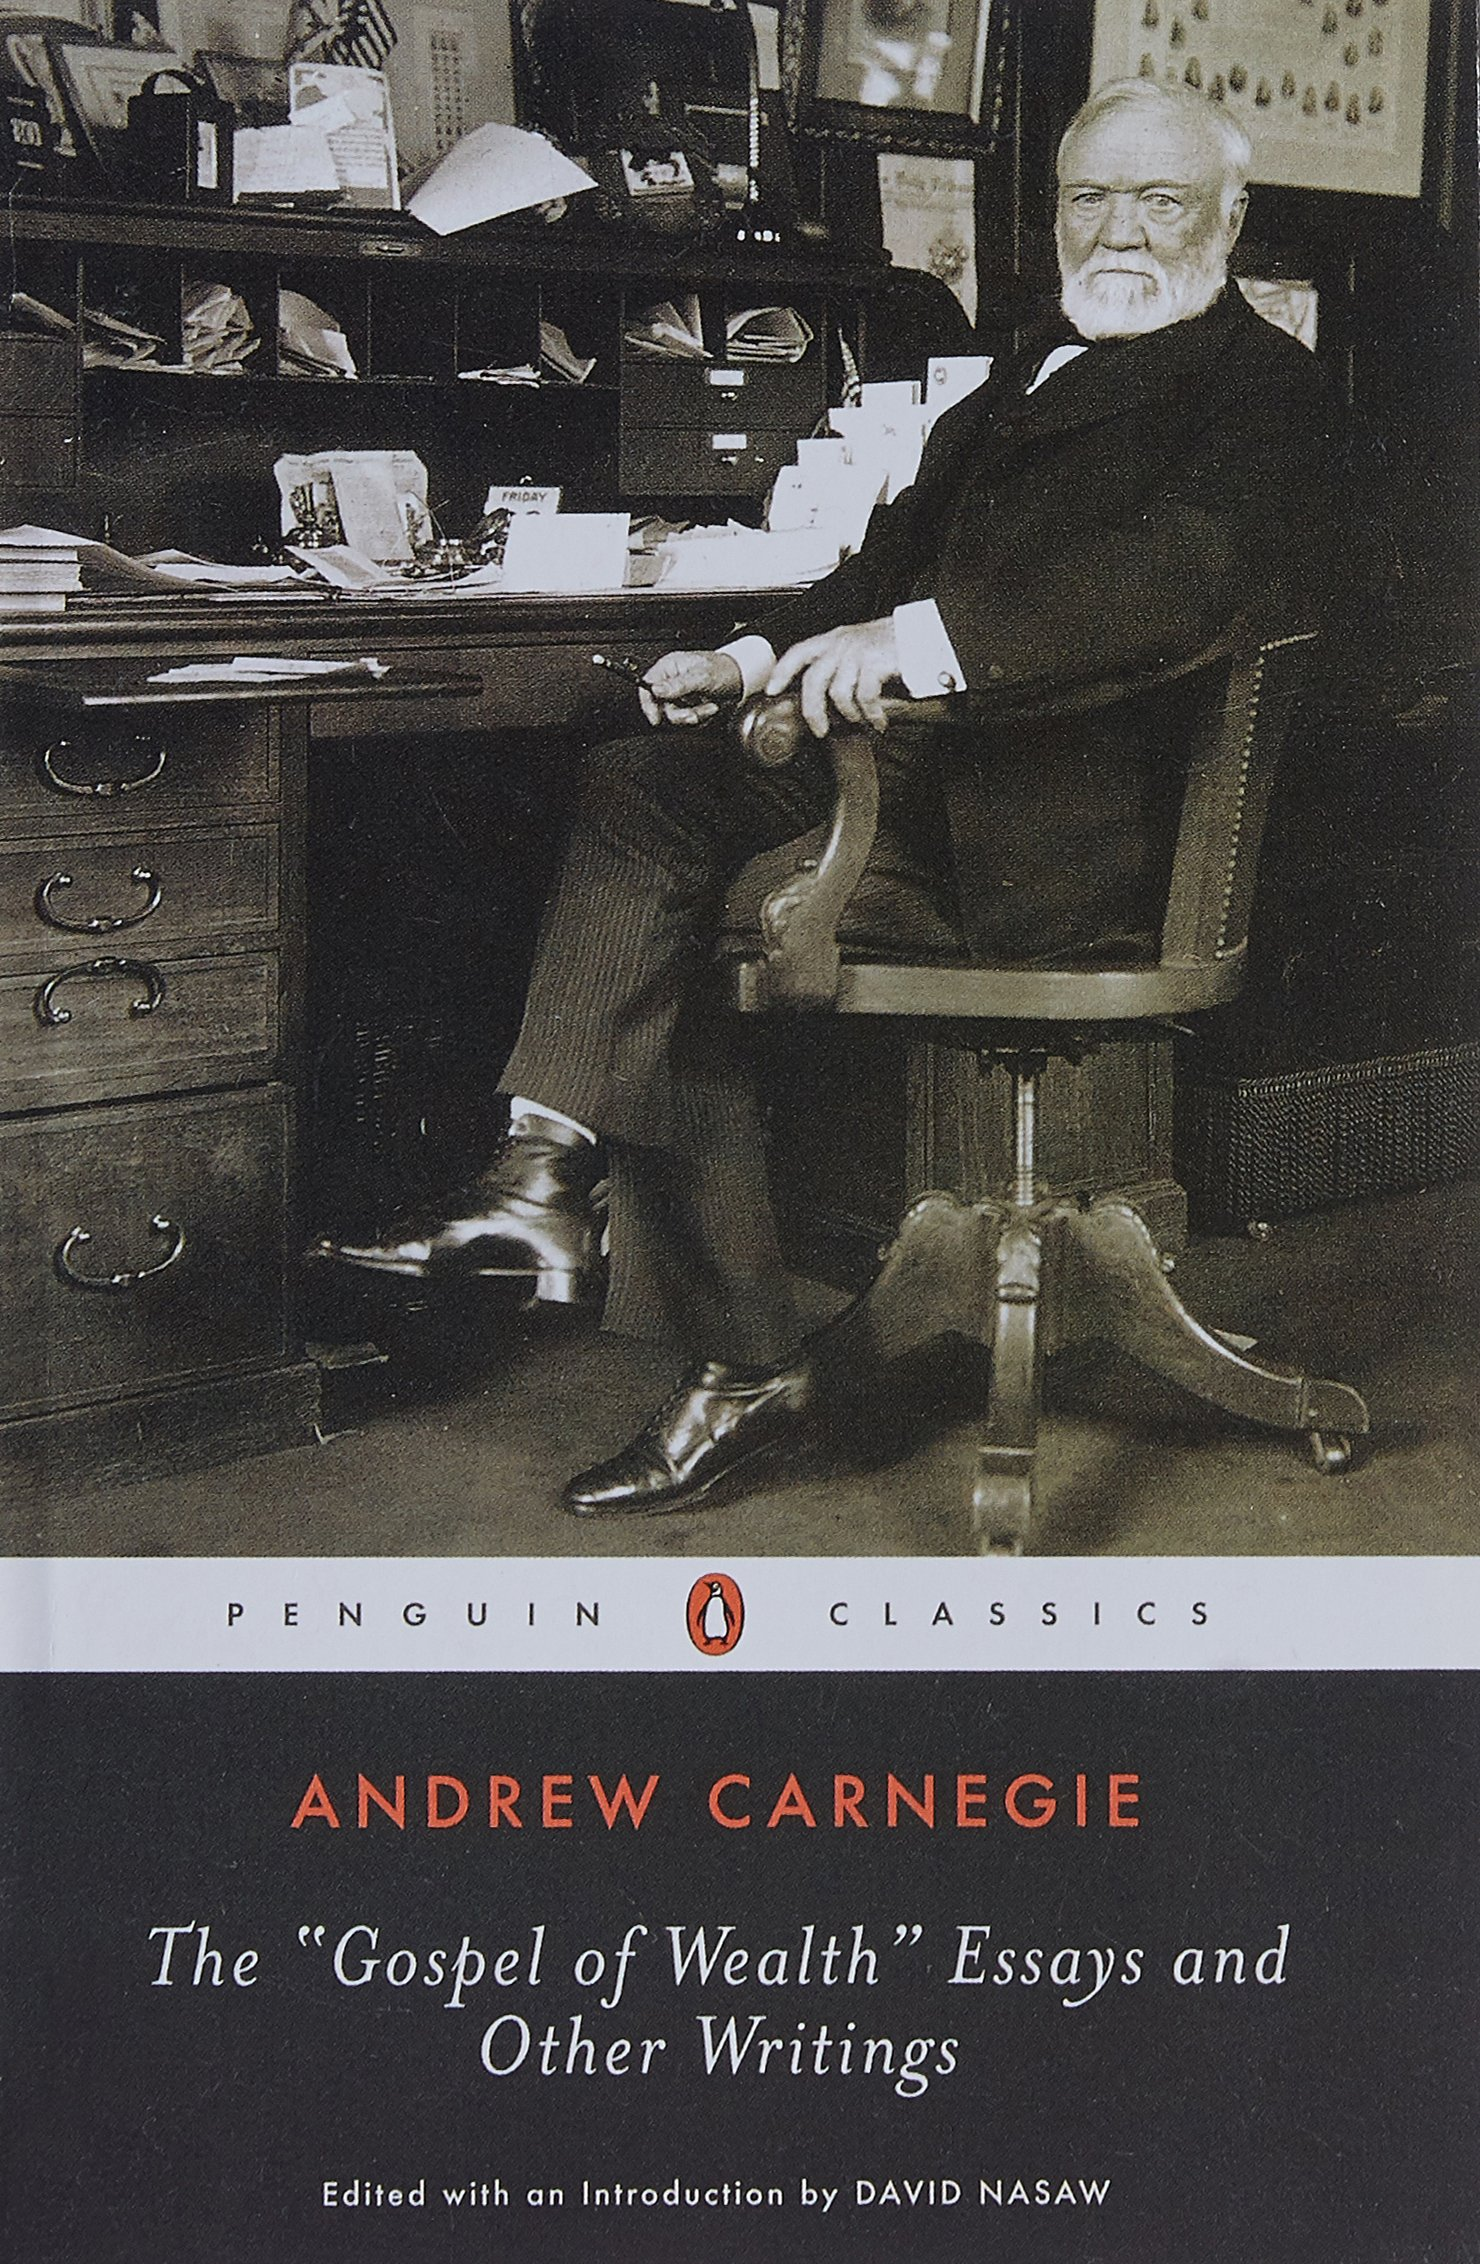 the gospel of wealth essays and other writings penguin classics the gospel of wealth essays and other writings penguin classics andrew carnegie david nasaw 9780143039891 com books